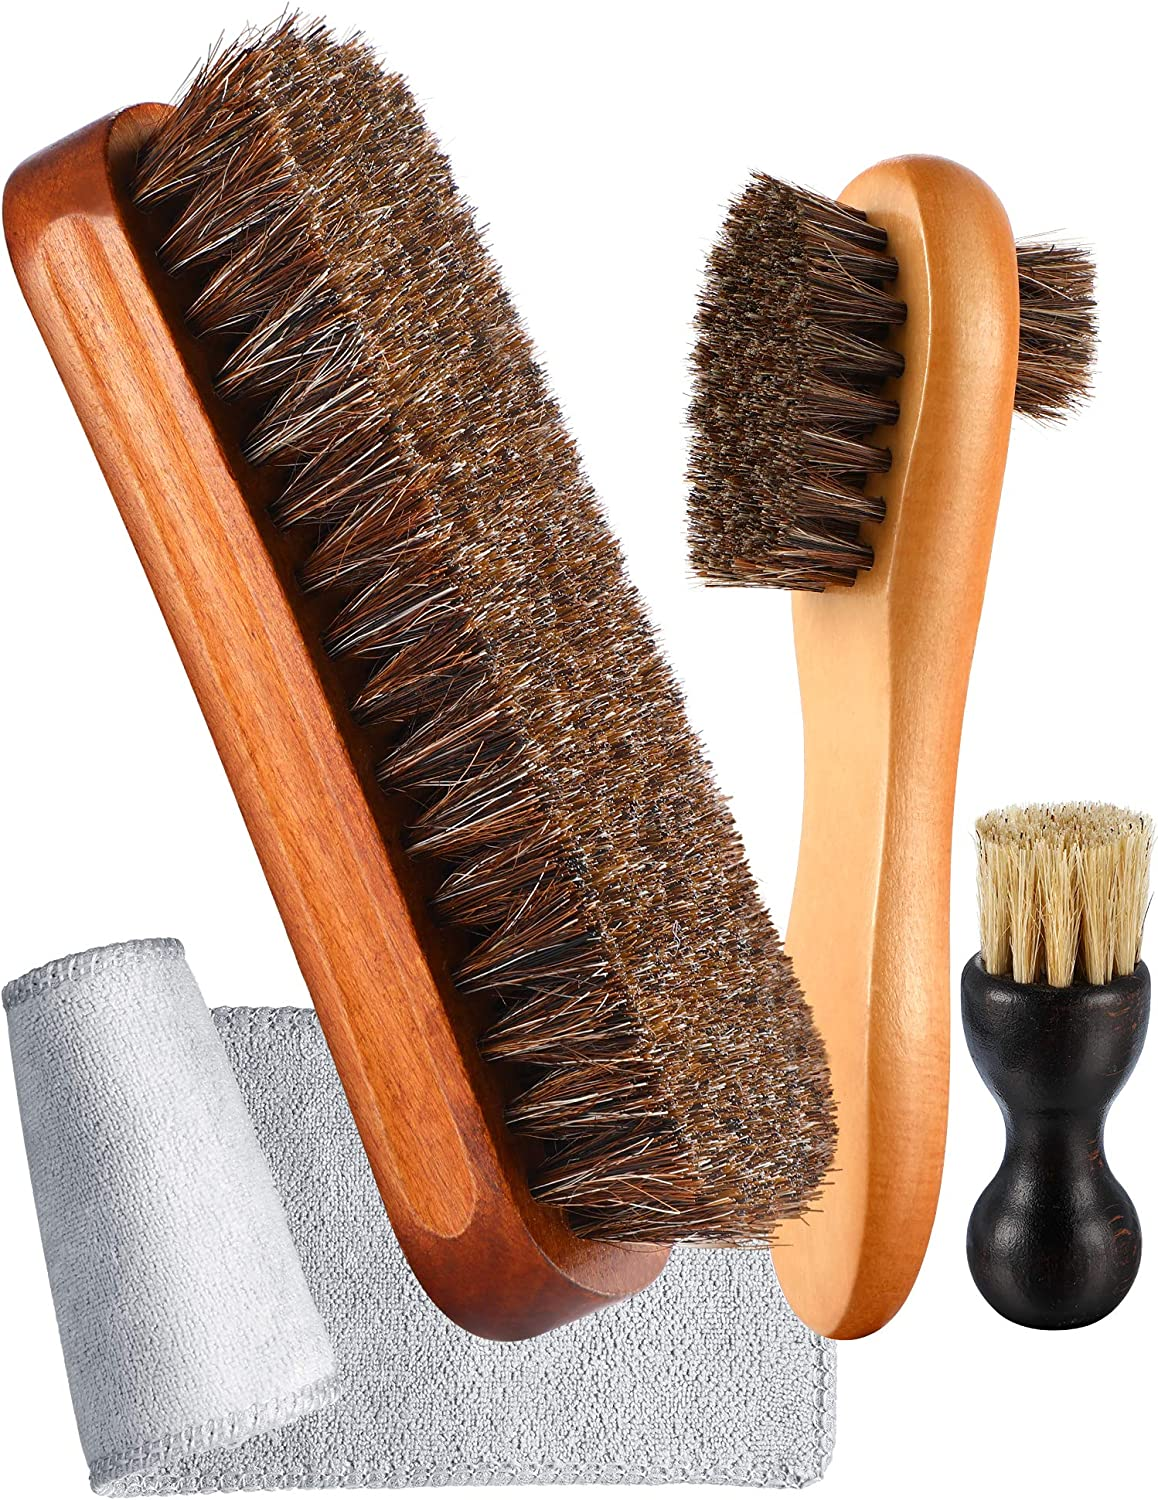 3 Pieces Horsehair Shoe Polishing Dauber Kit Shine Brush Shoe Care Applicators